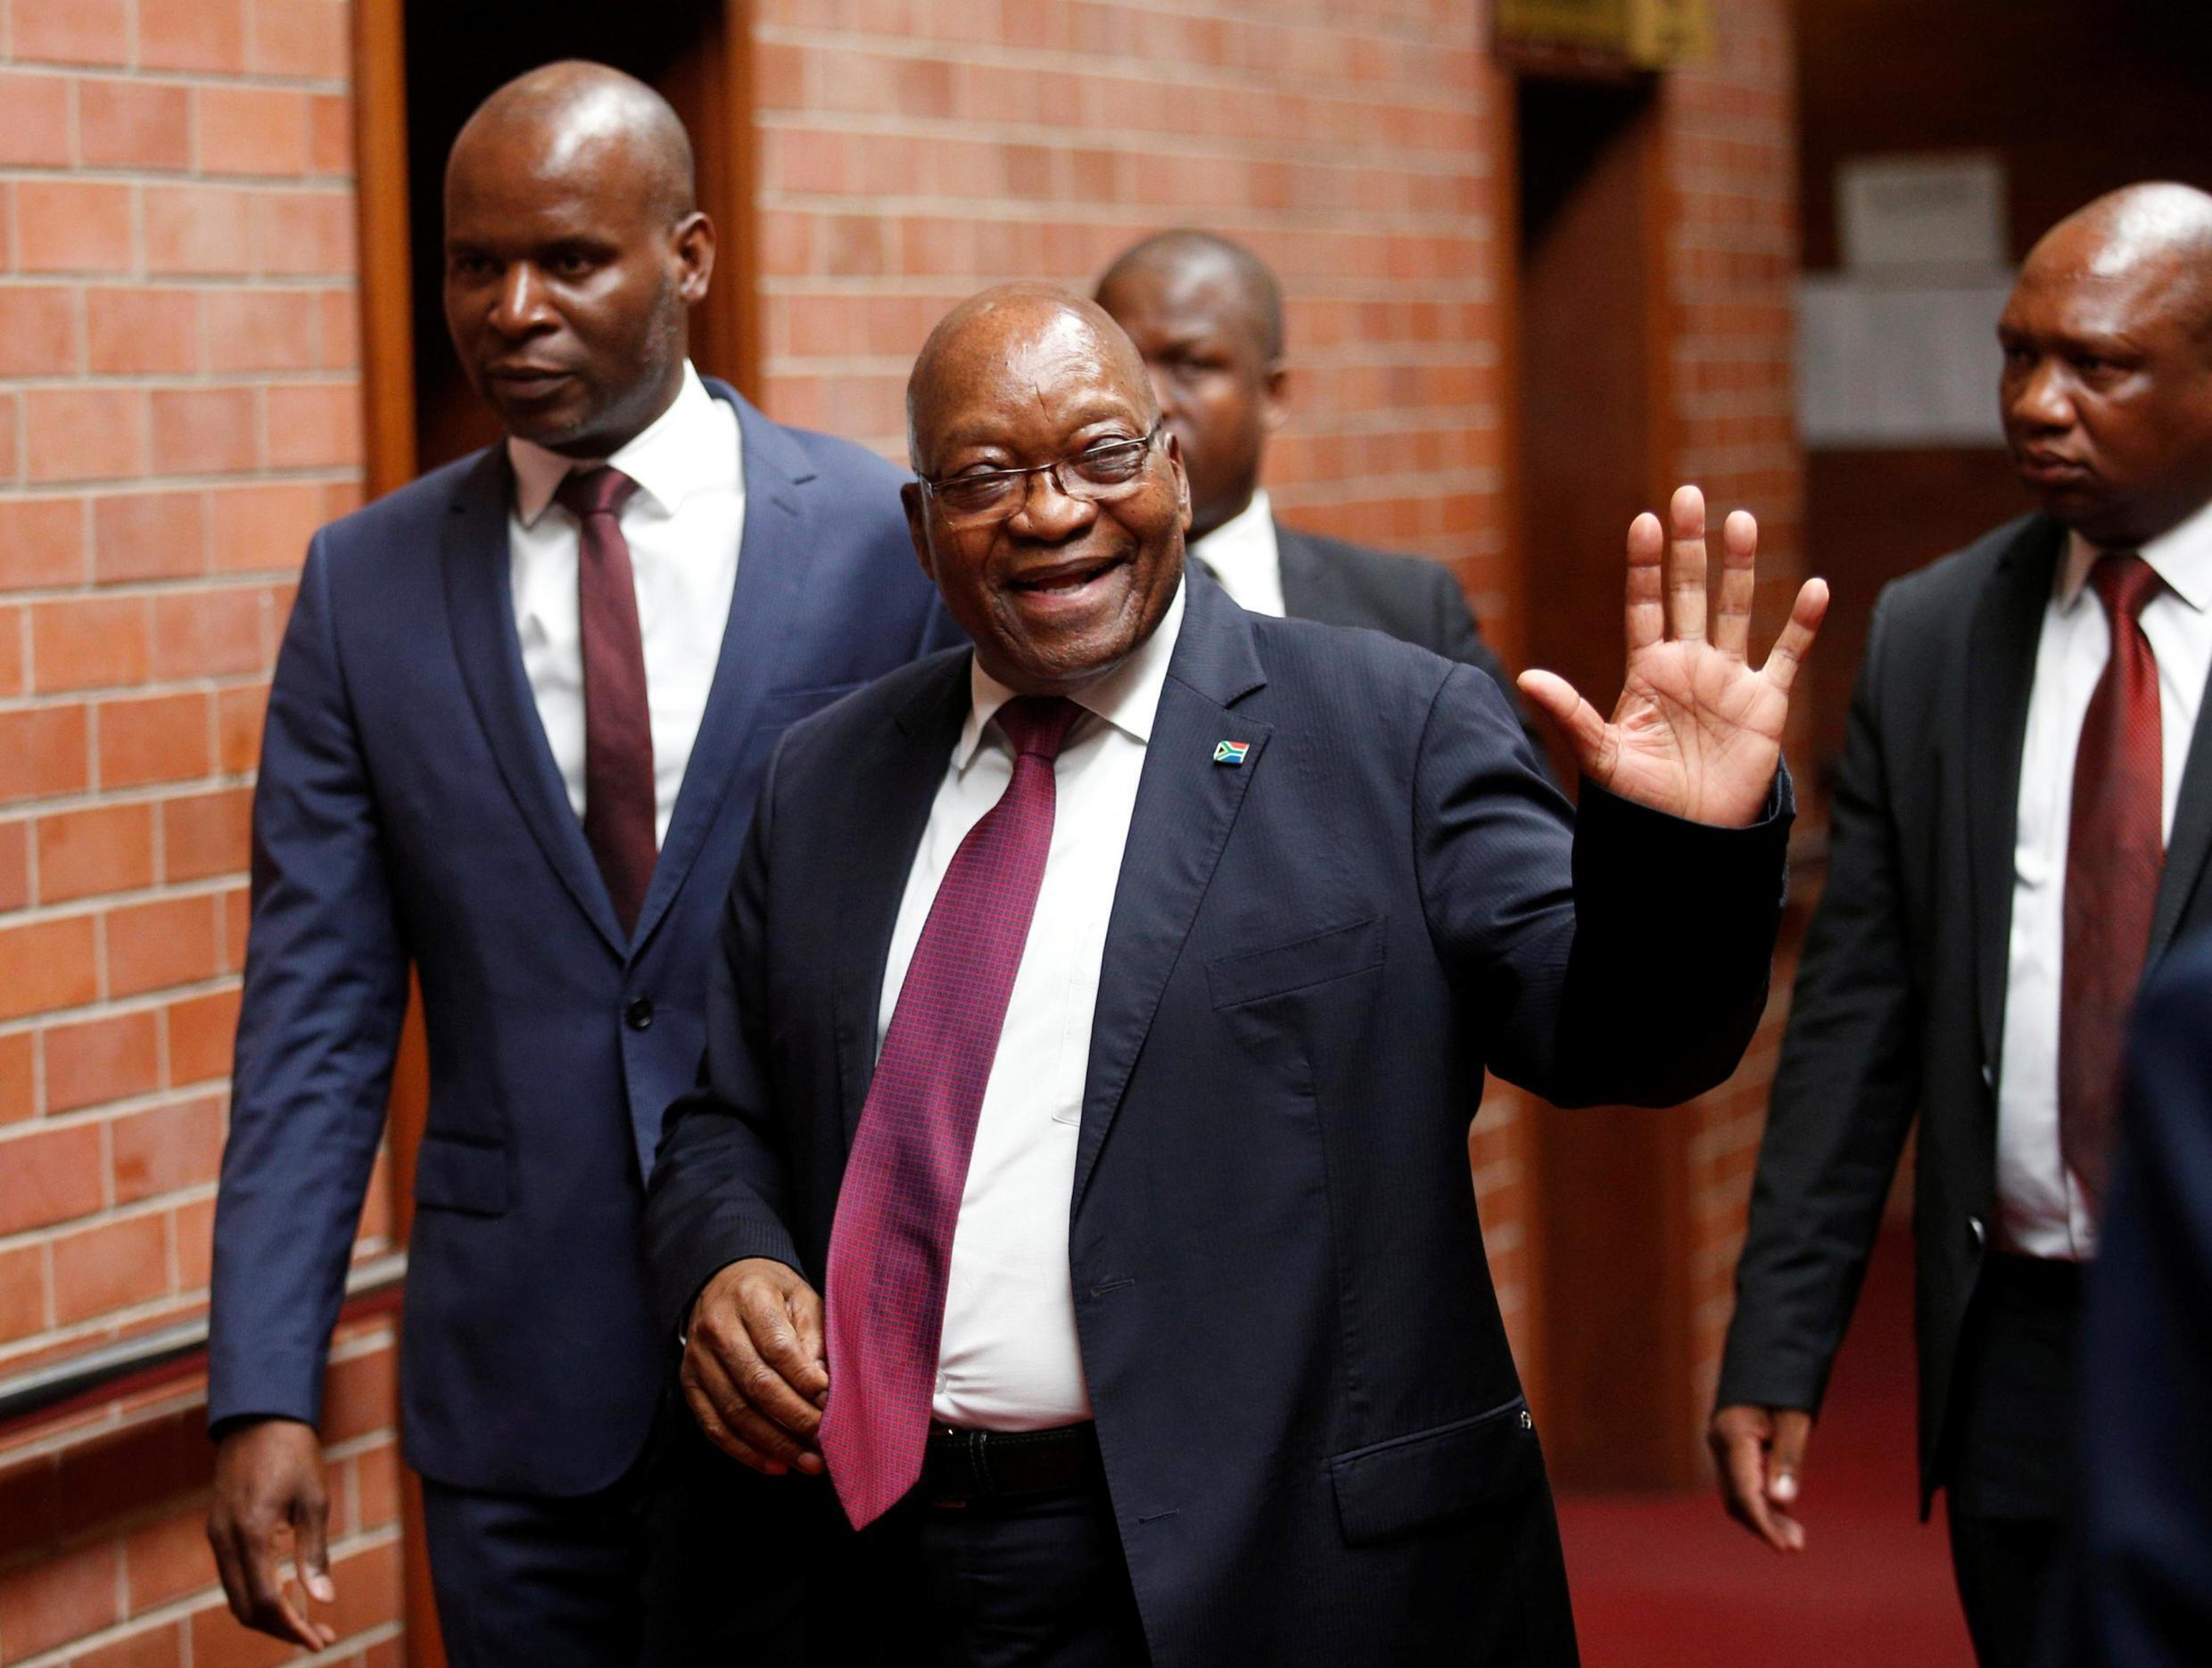 South African former president, Jacob Zuma, leaving the Pietermaritzburg courtroom.